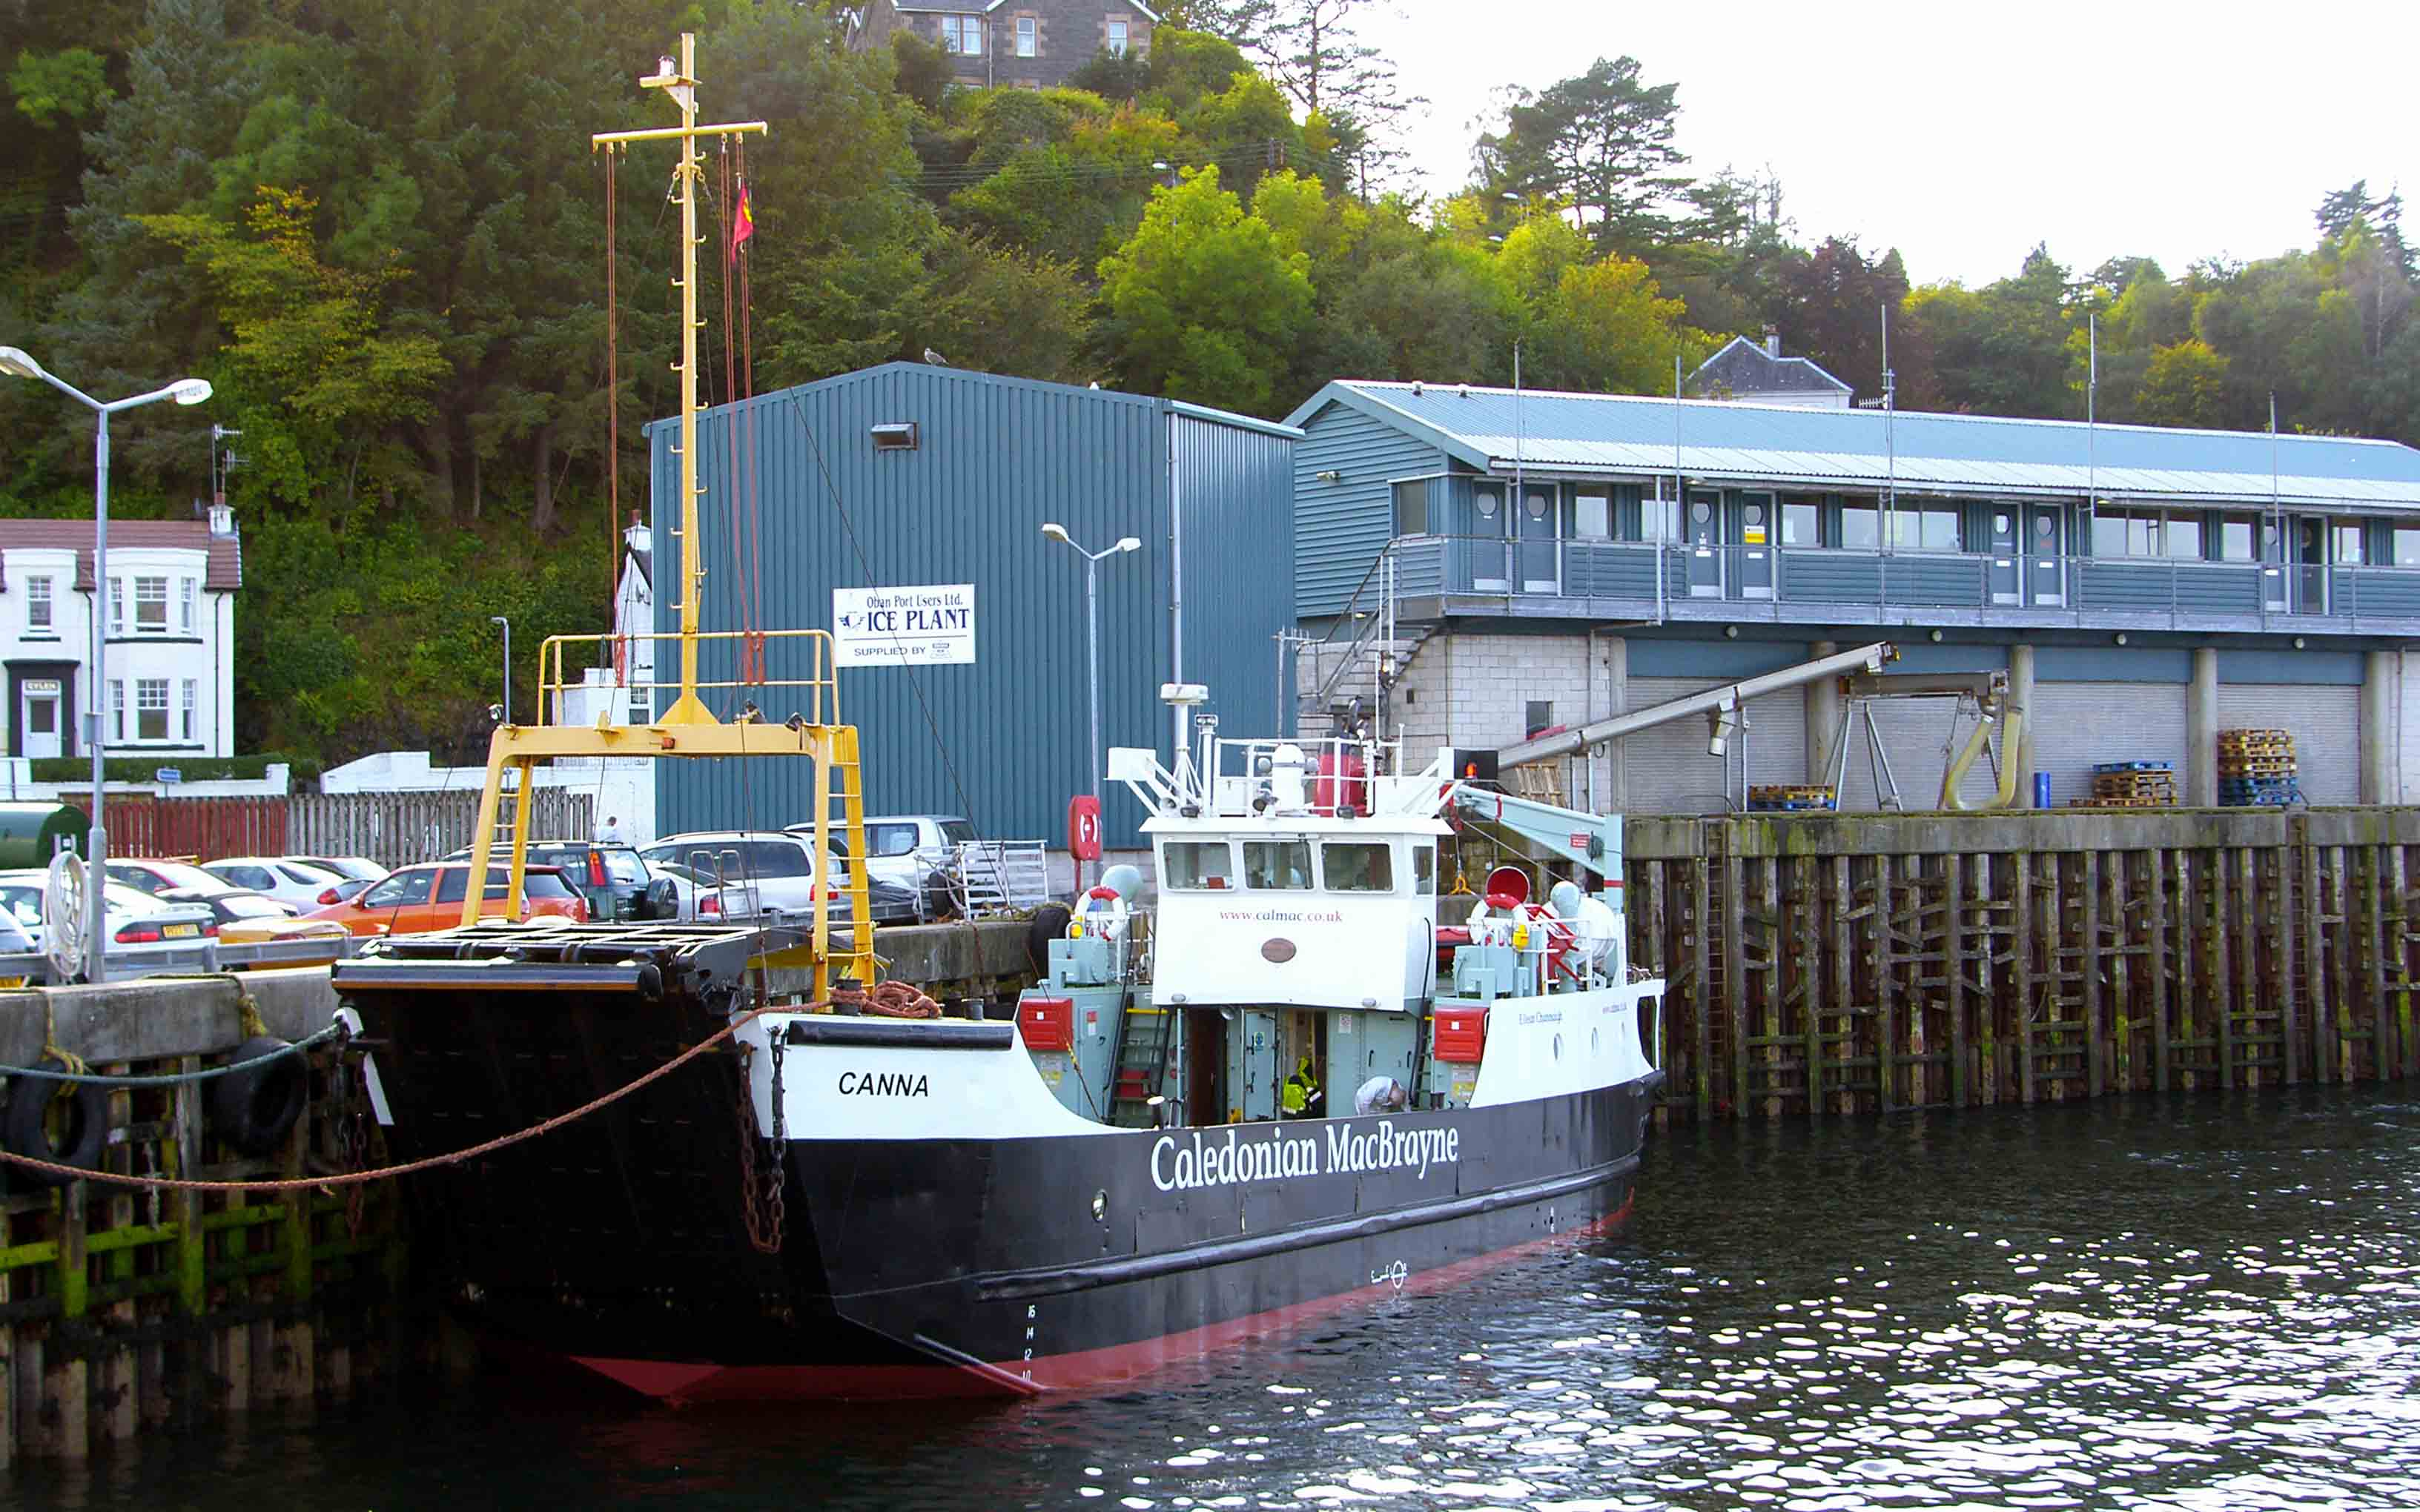 Canna lying at Oban's layby berth (Ships of CalMac)